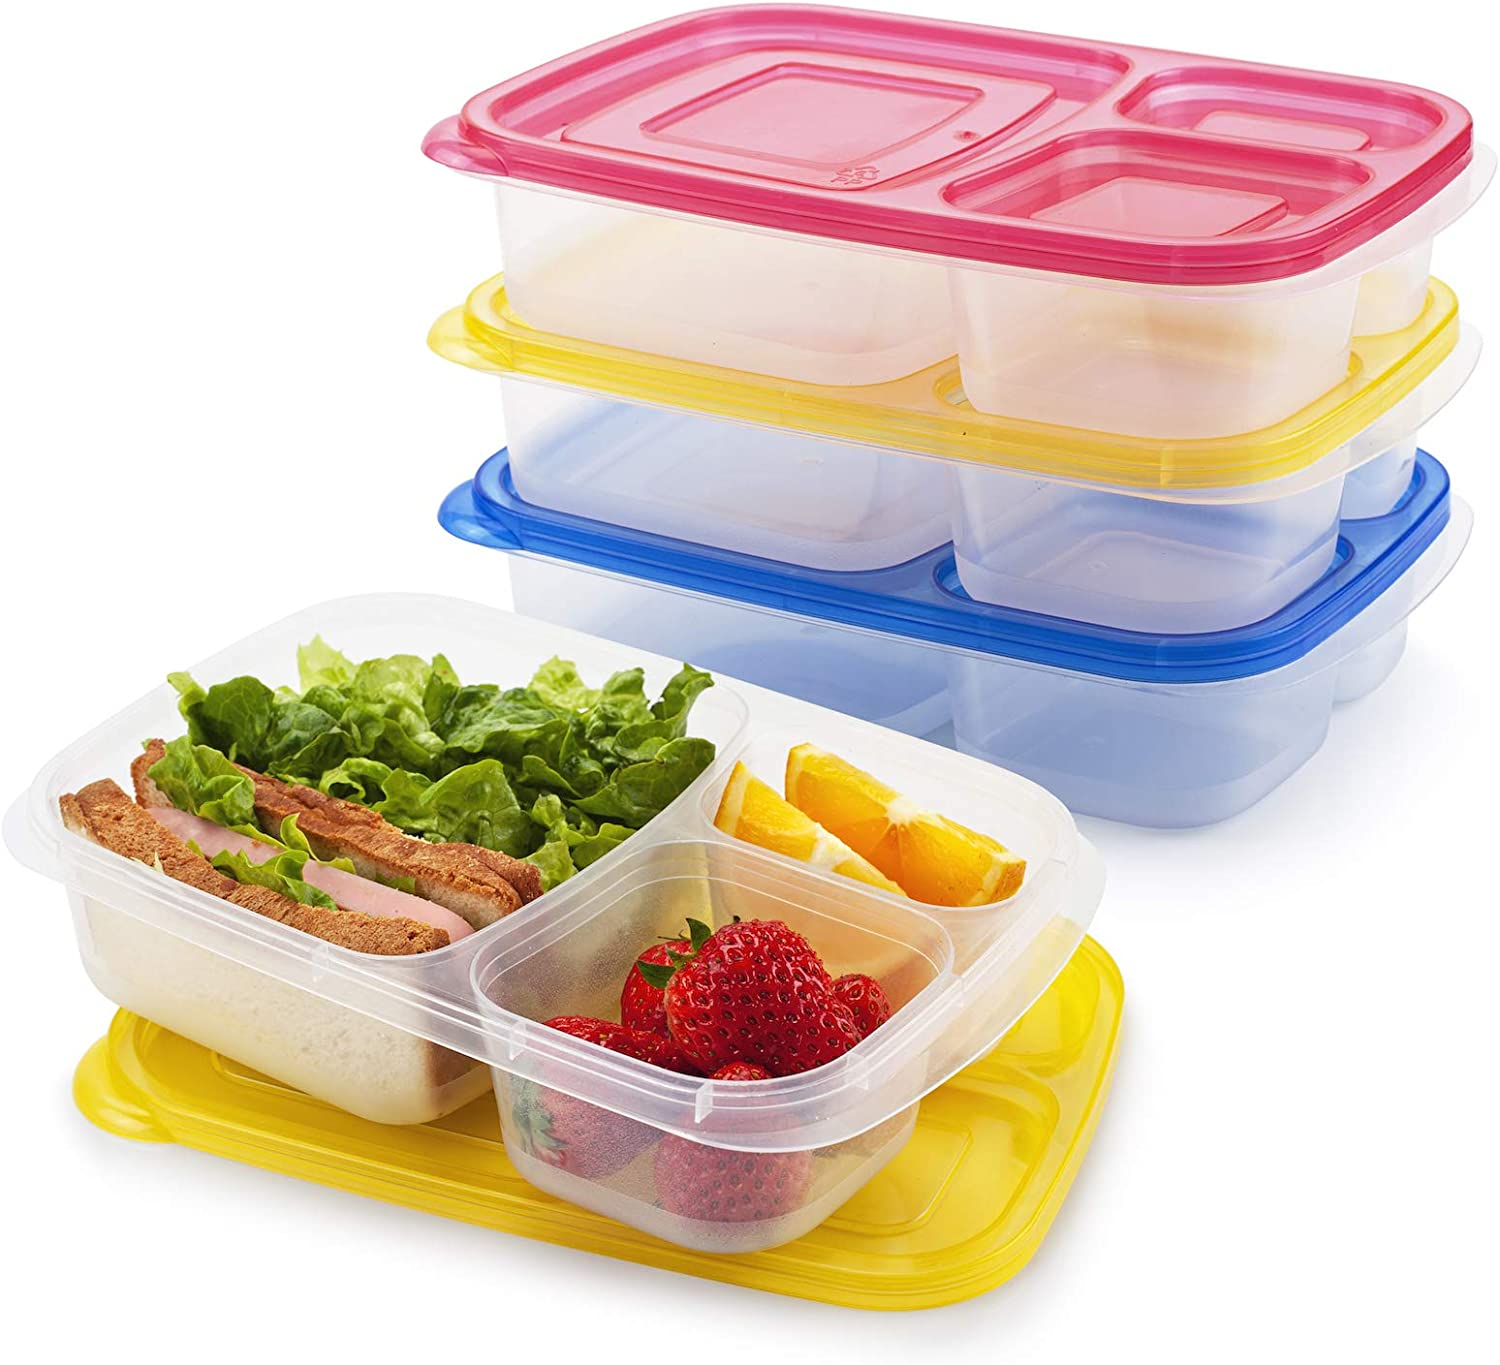 Freshmage Bento Lunch Box Containers, 3 Pack Reusable Microwave Dishwasher Safe Leakproof Food Meal Prep Containers with 3 Compartments